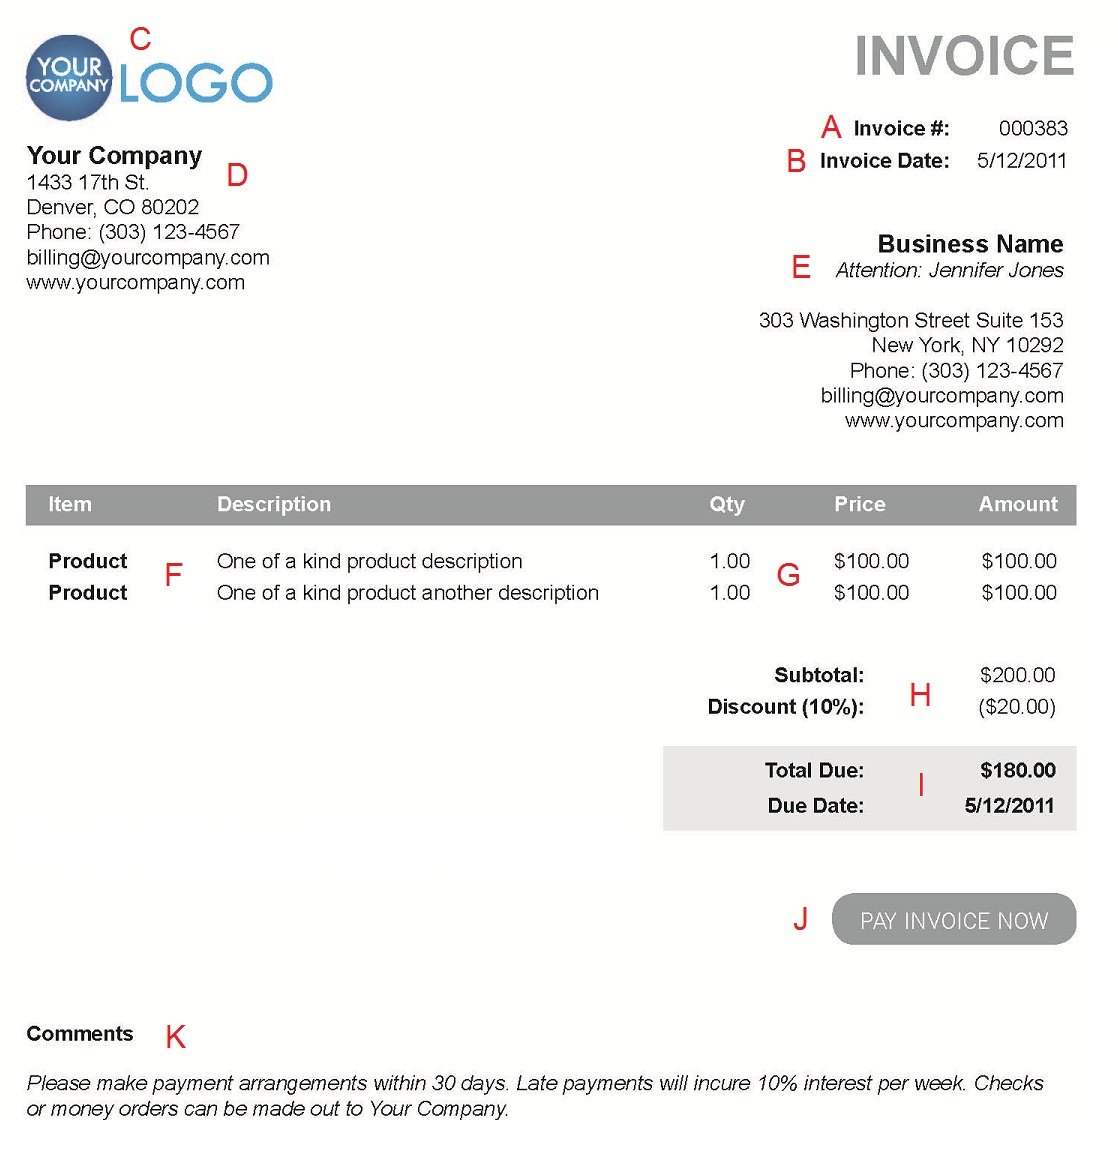 Coolmathgamesus  Stunning The  Different Sections Of An Electronic Payment Invoice With Luxury A  With Attractive Free Printable Invoice Online Also Automated Invoicing Software In Addition Create A Tax Invoice And Hotel Invoice Format As Well As Invoice Machine Login Additionally Invoice Template Singapore From Paysimplecom With Coolmathgamesus  Luxury The  Different Sections Of An Electronic Payment Invoice With Attractive A  And Stunning Free Printable Invoice Online Also Automated Invoicing Software In Addition Create A Tax Invoice From Paysimplecom